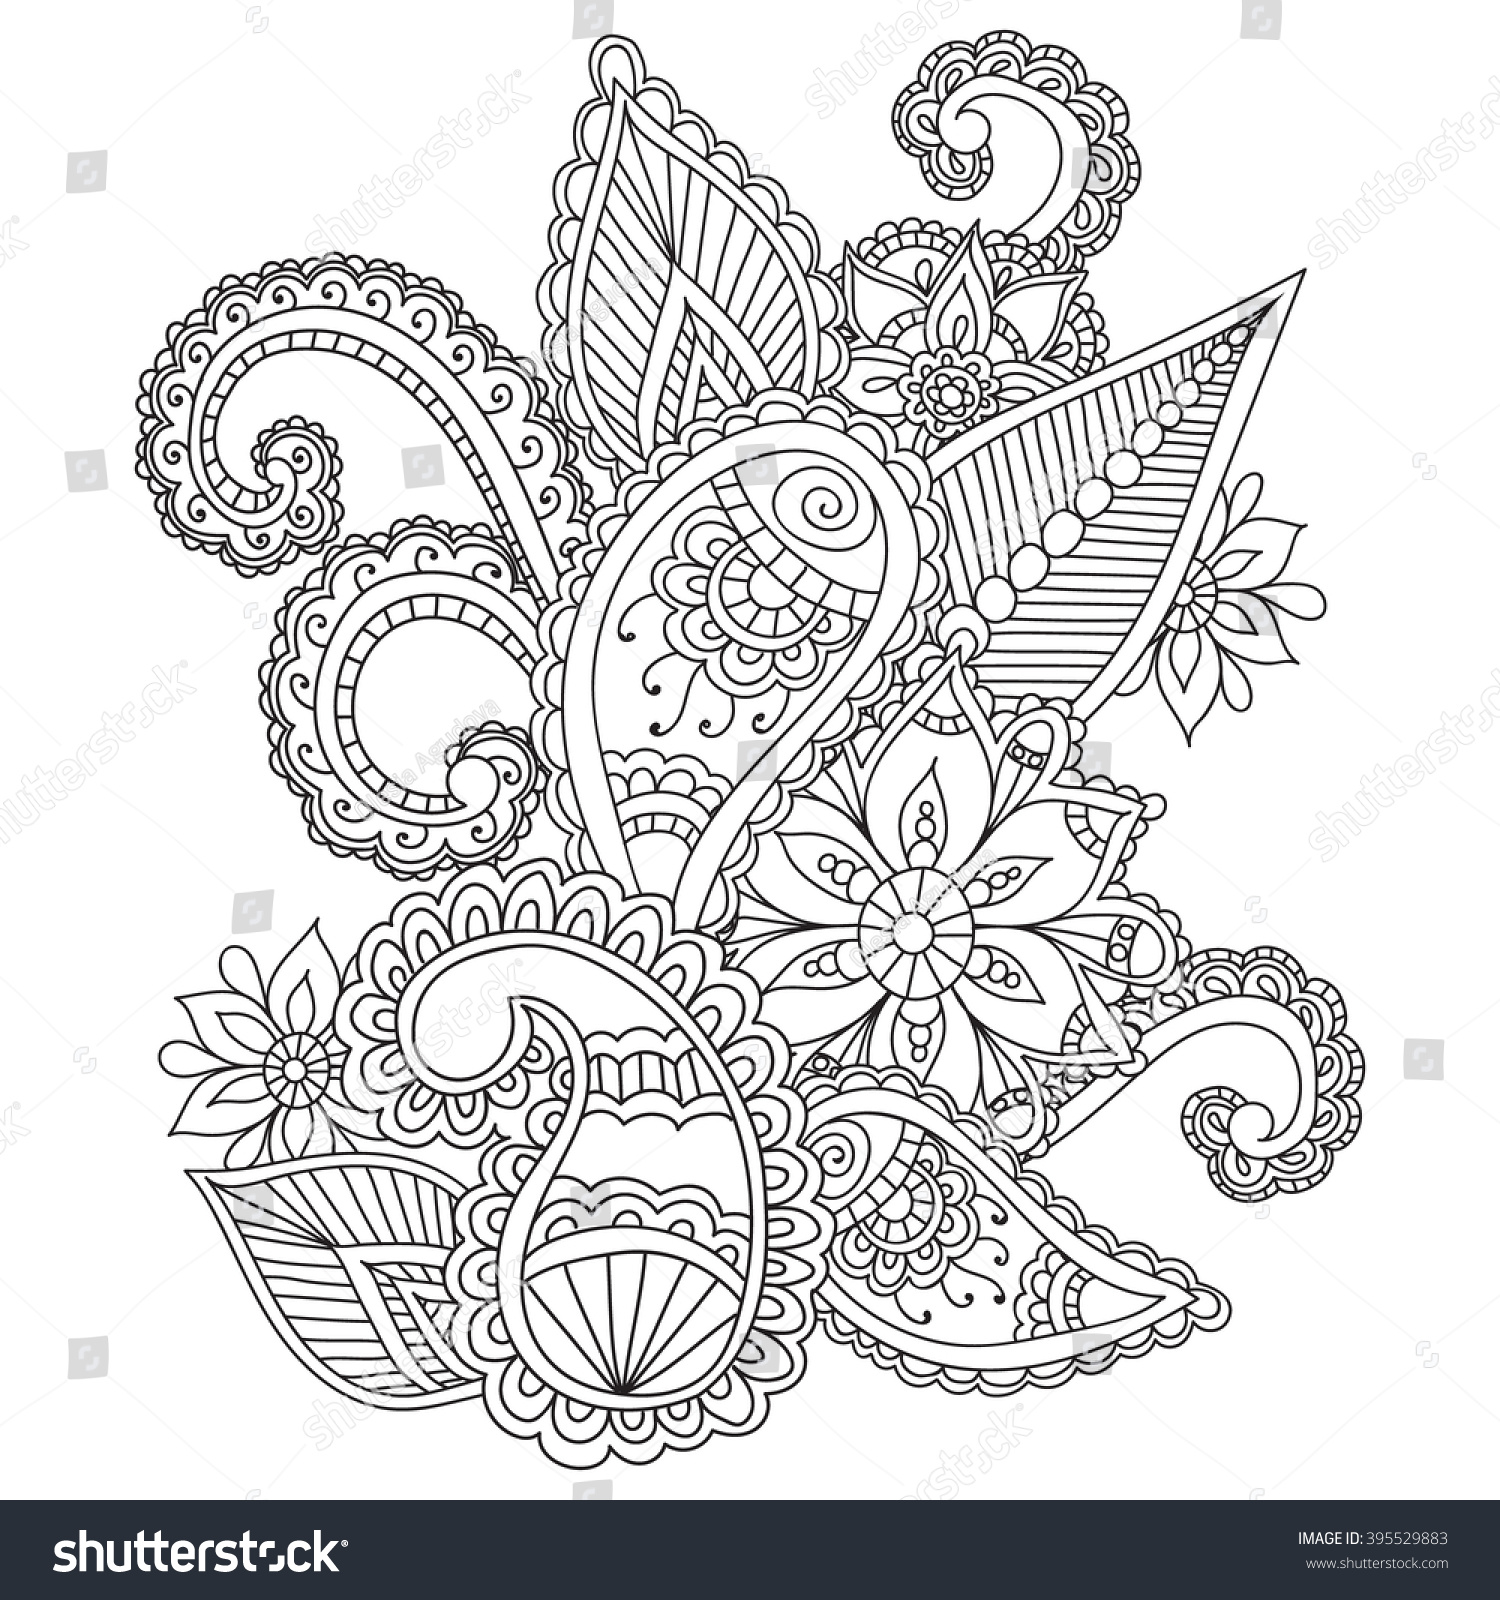 Henna coloring pages coloring pages for Henna coloring pages